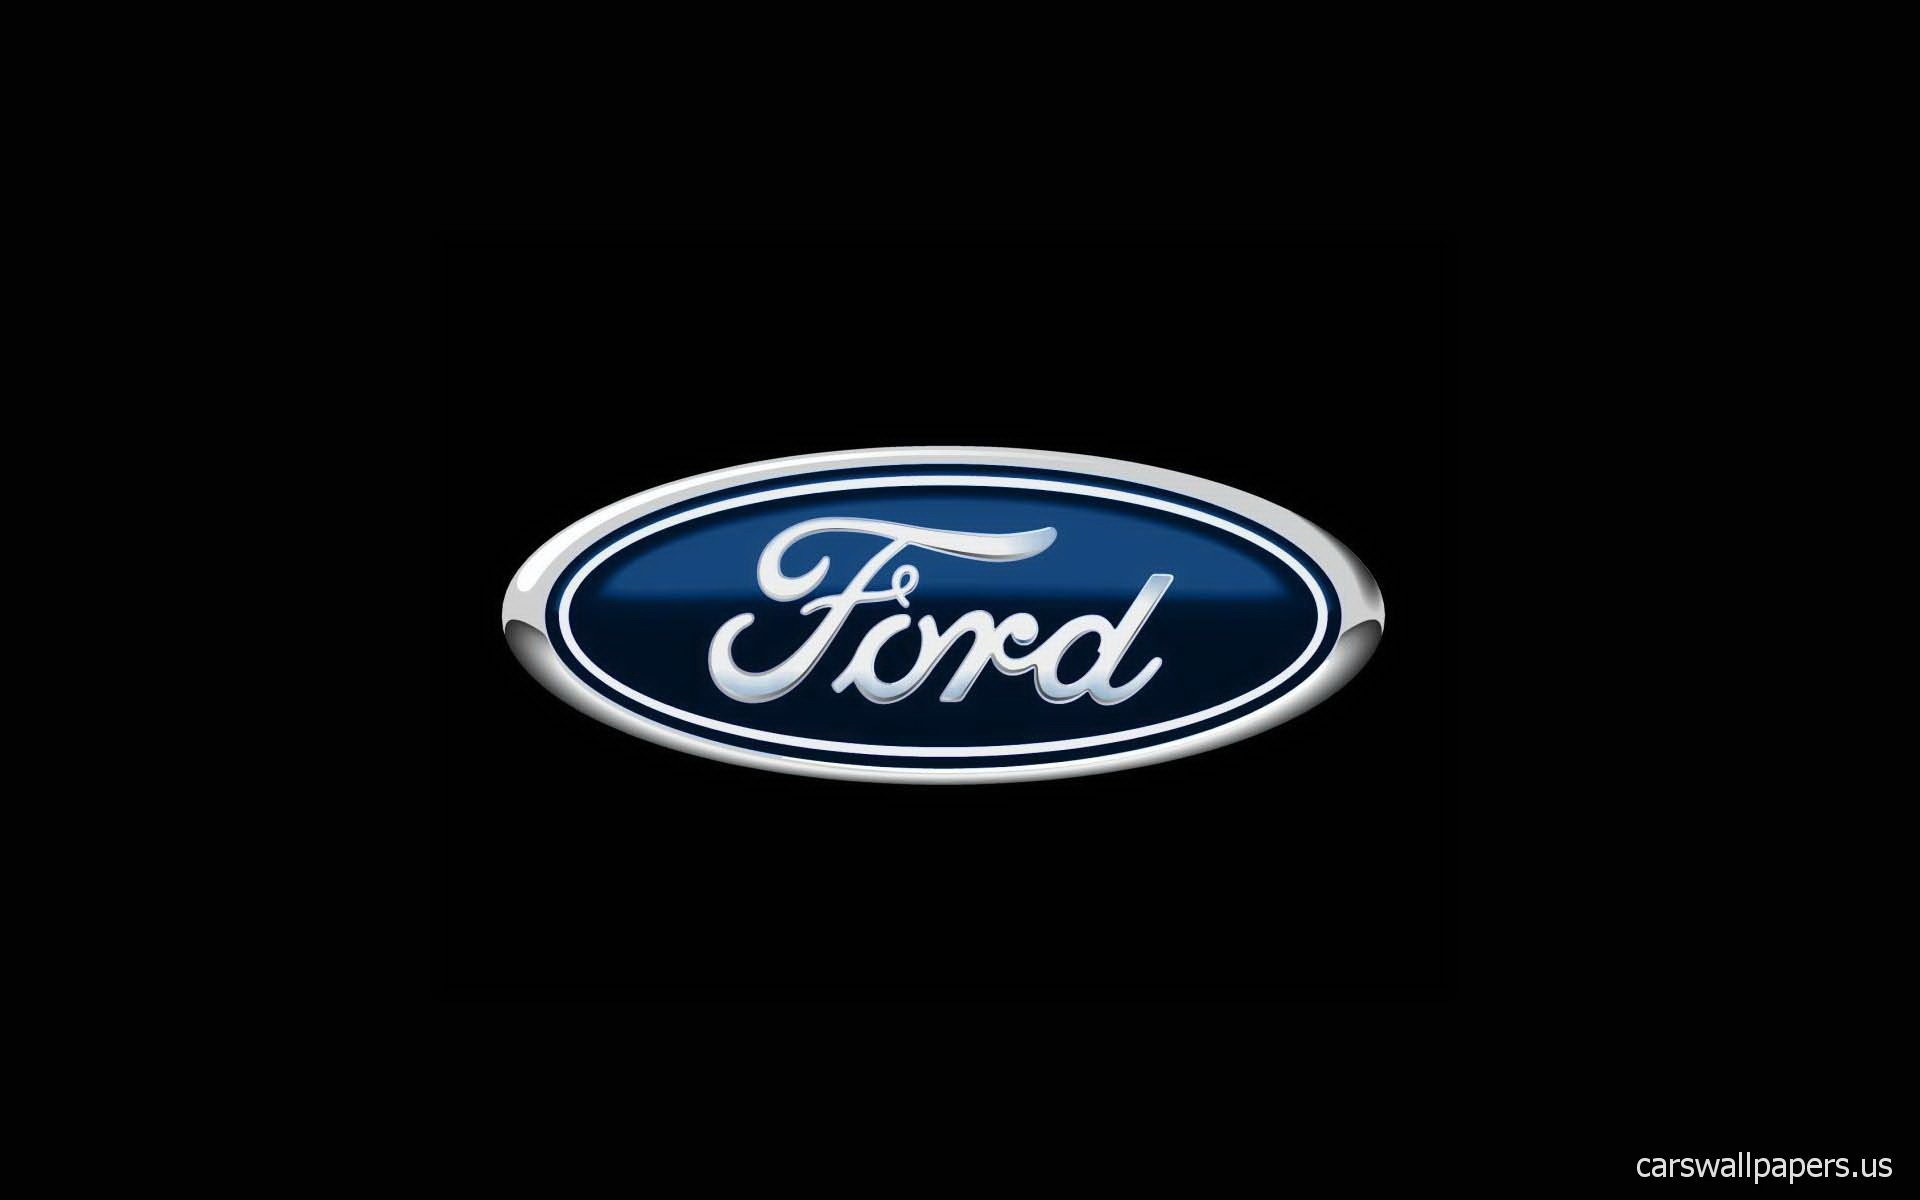 Ford Iphone Wallpaper 71 Images